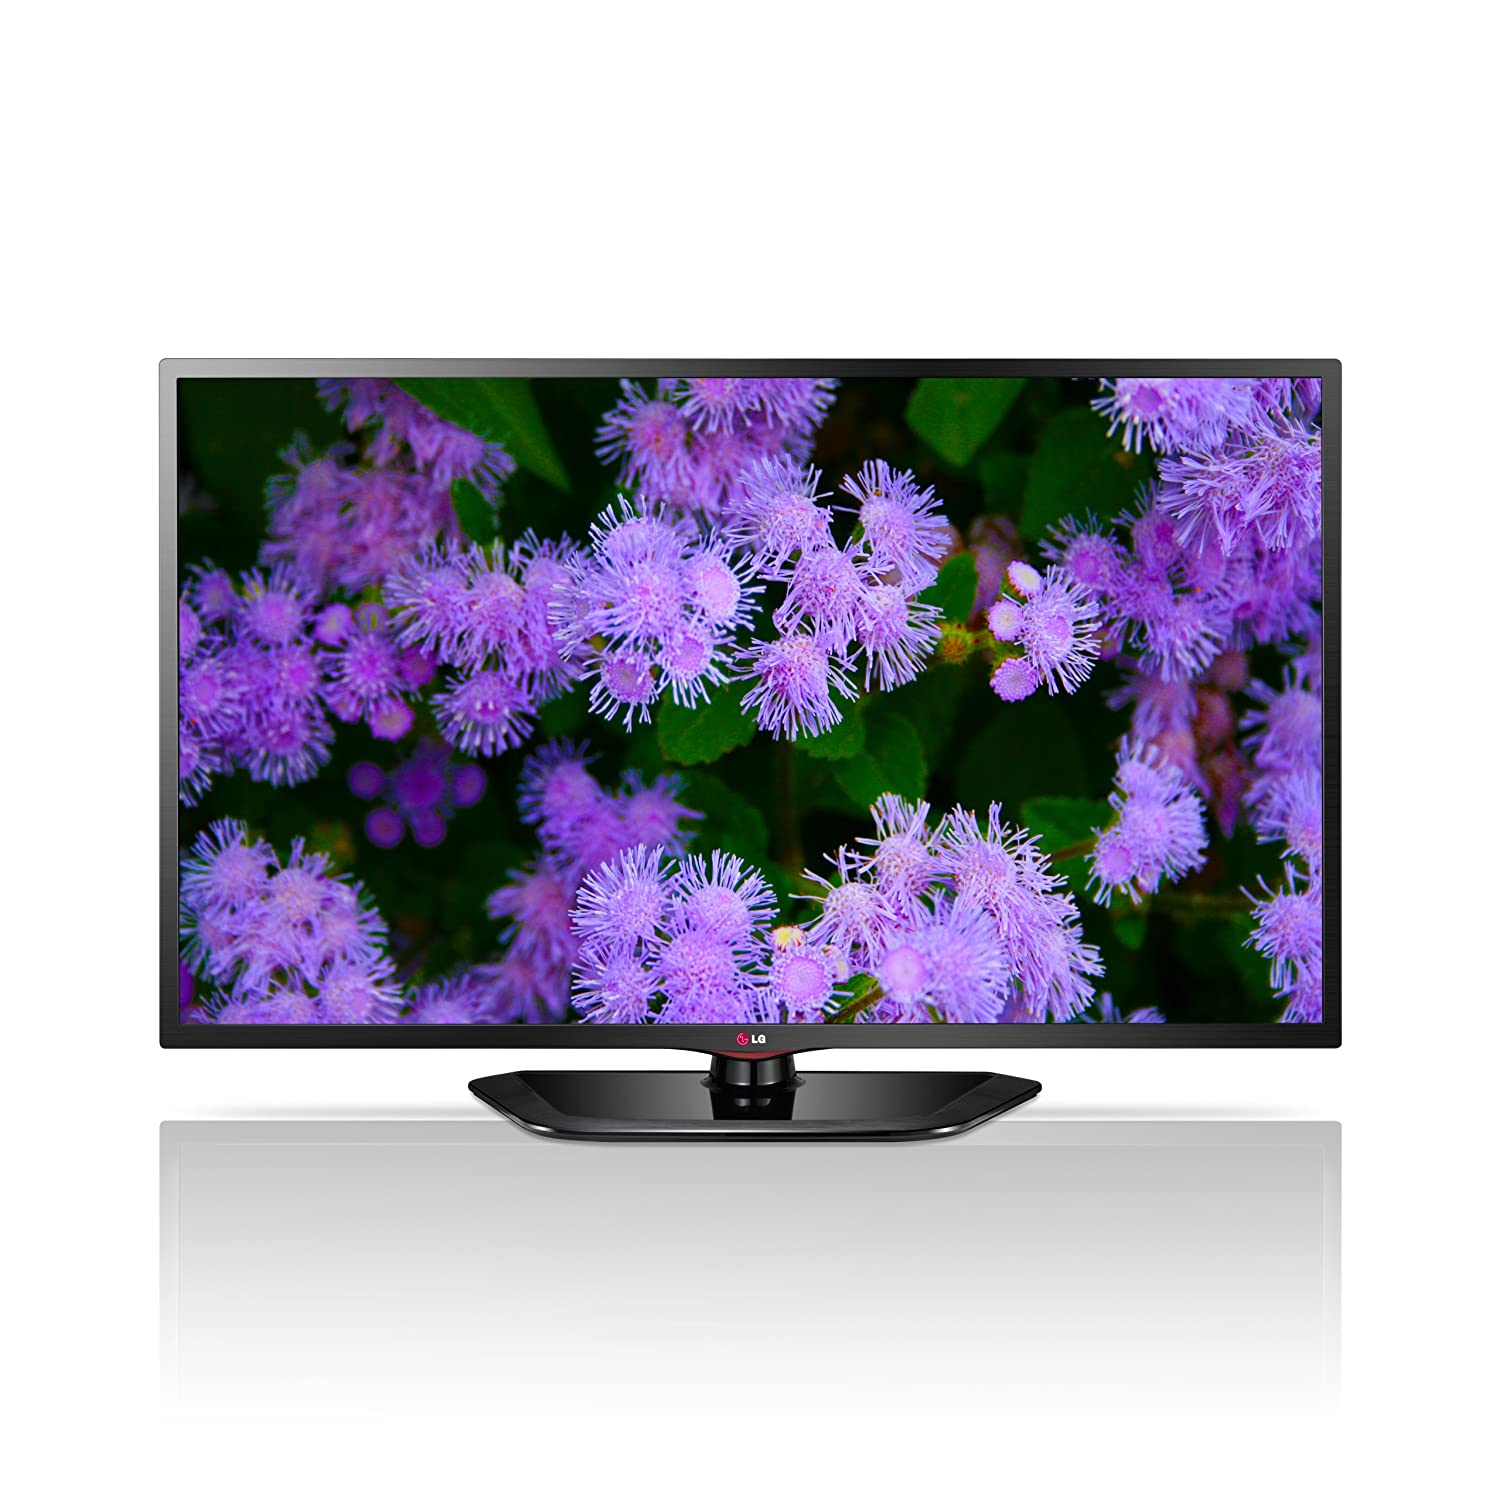 LG-Electronics-50LN5200-50-Inch-1080p-60Hz-LED-TV-Discontinued-by-Manufacturer-2013-Model-